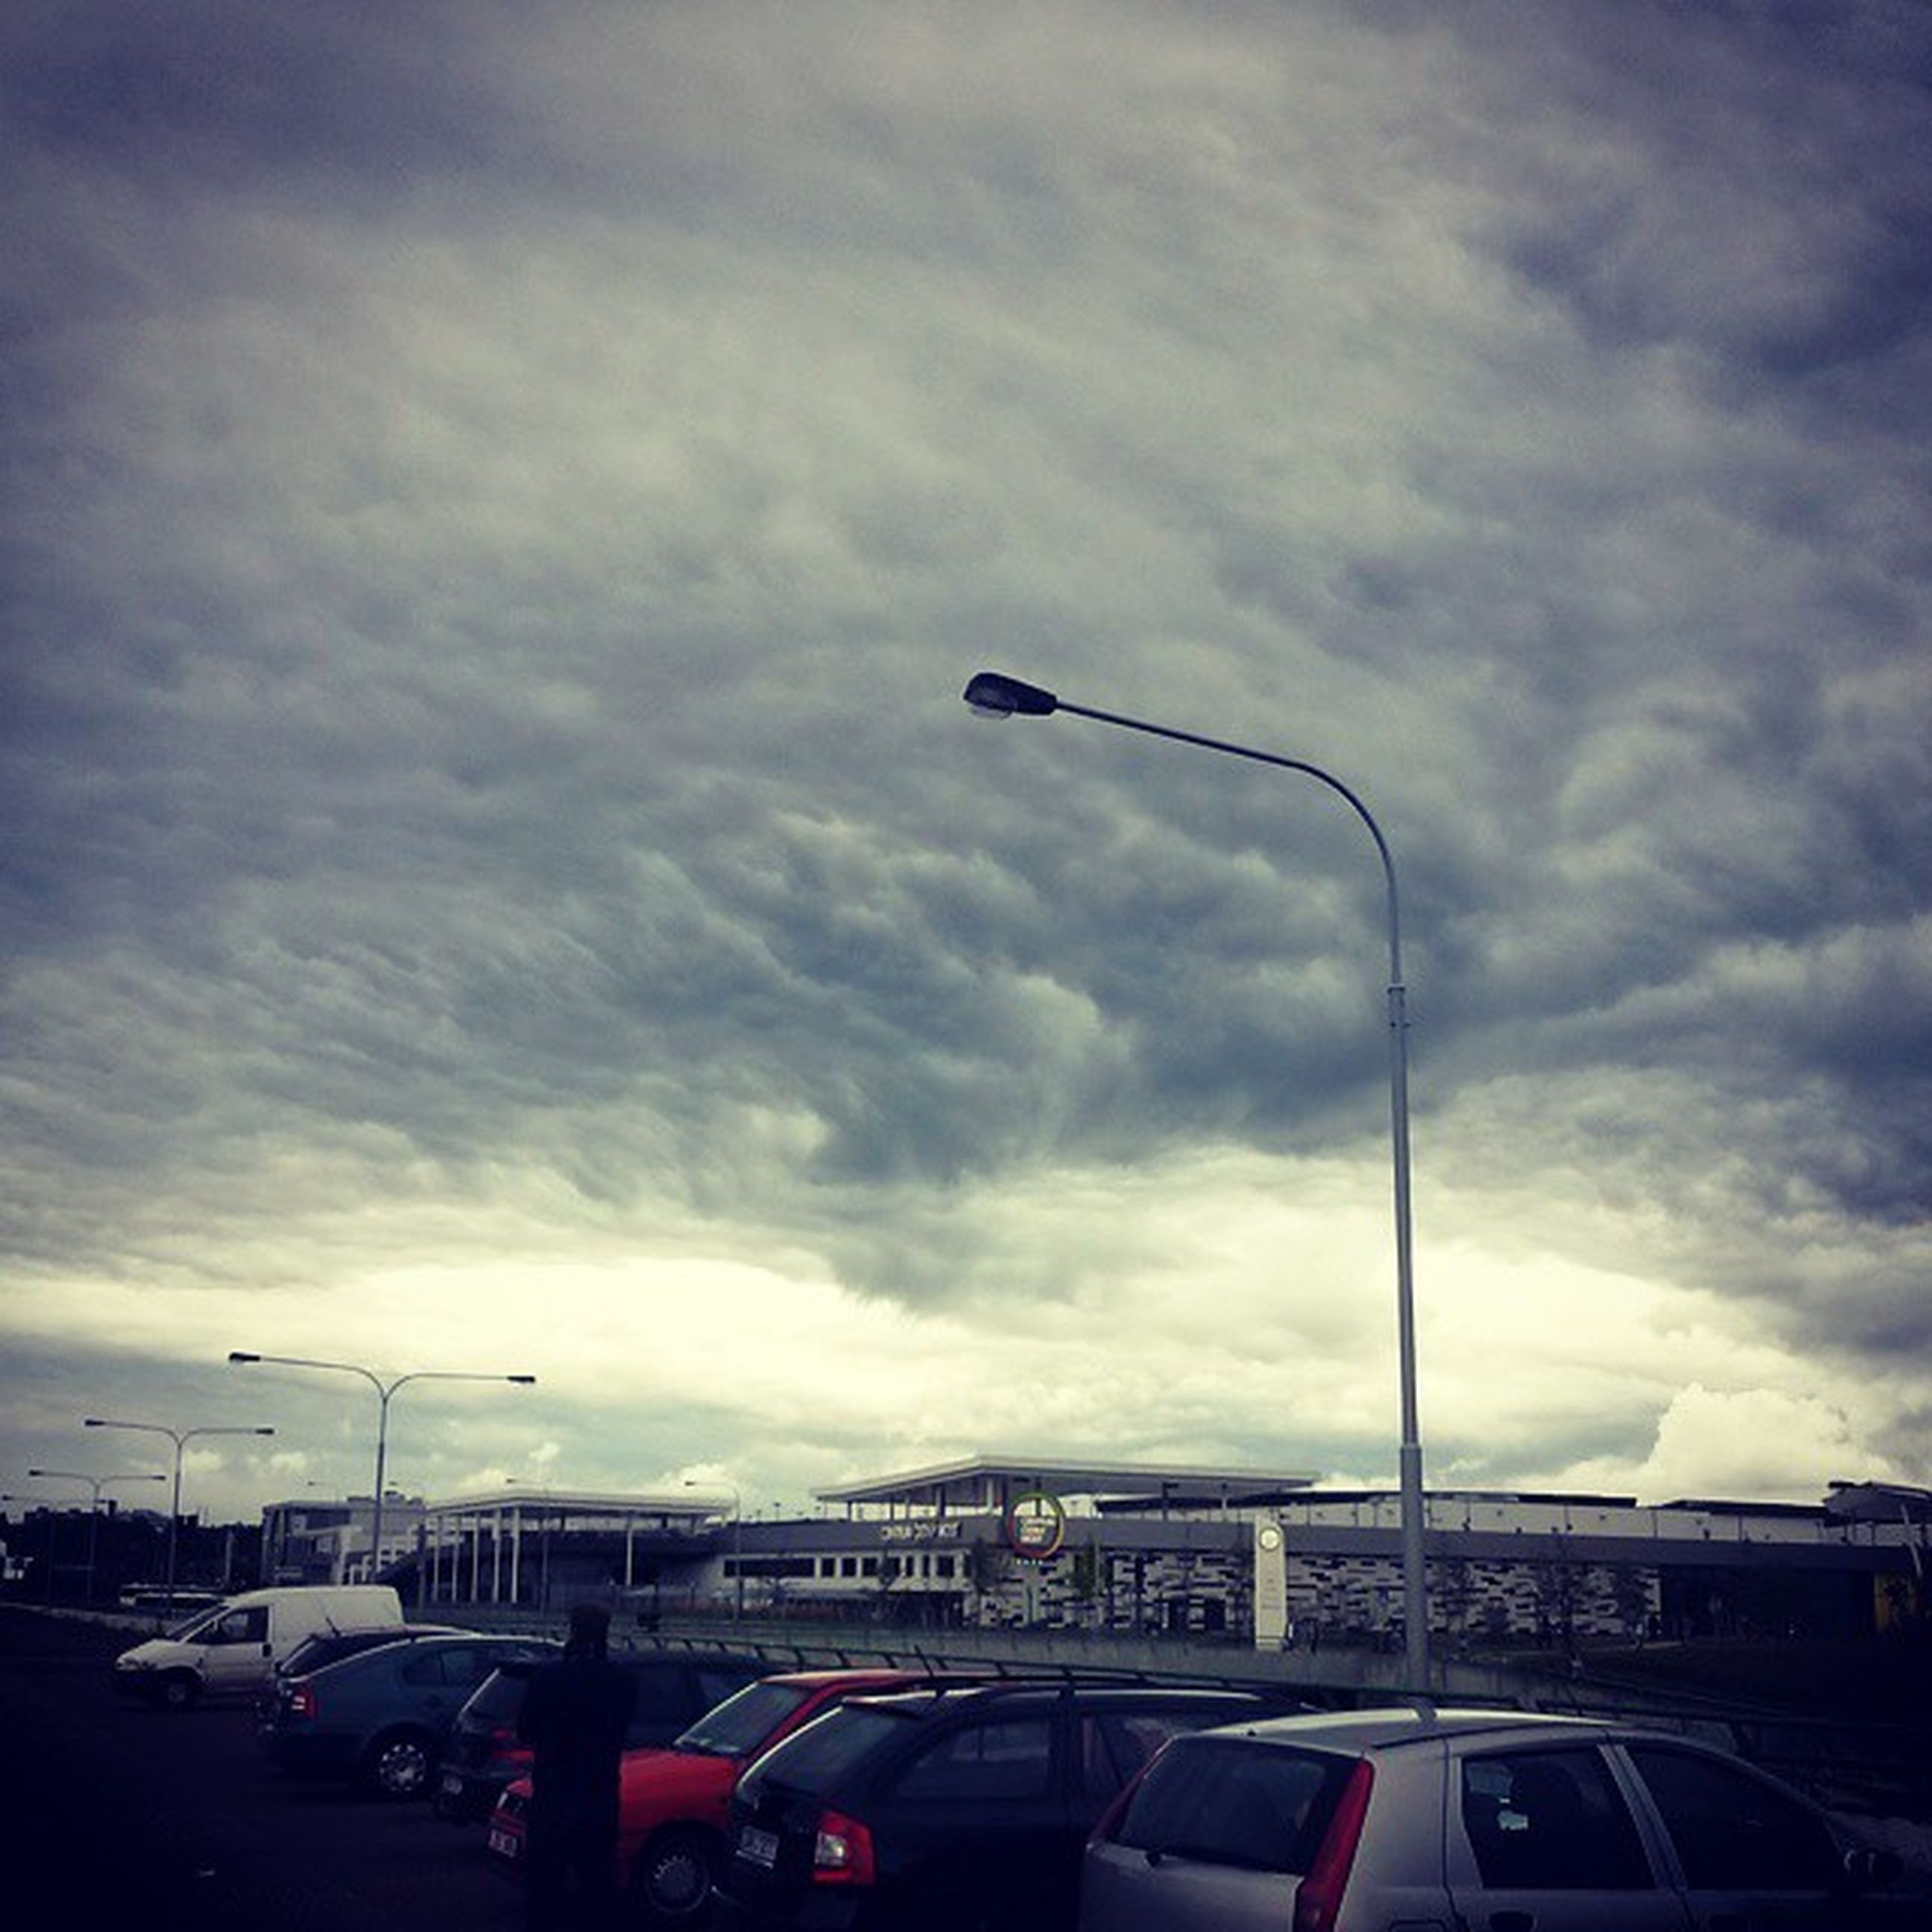 transportation, car, land vehicle, mode of transport, sky, cloud - sky, street light, road, cloudy, street, on the move, traffic, built structure, low angle view, building exterior, architecture, overcast, cloud, city, weather